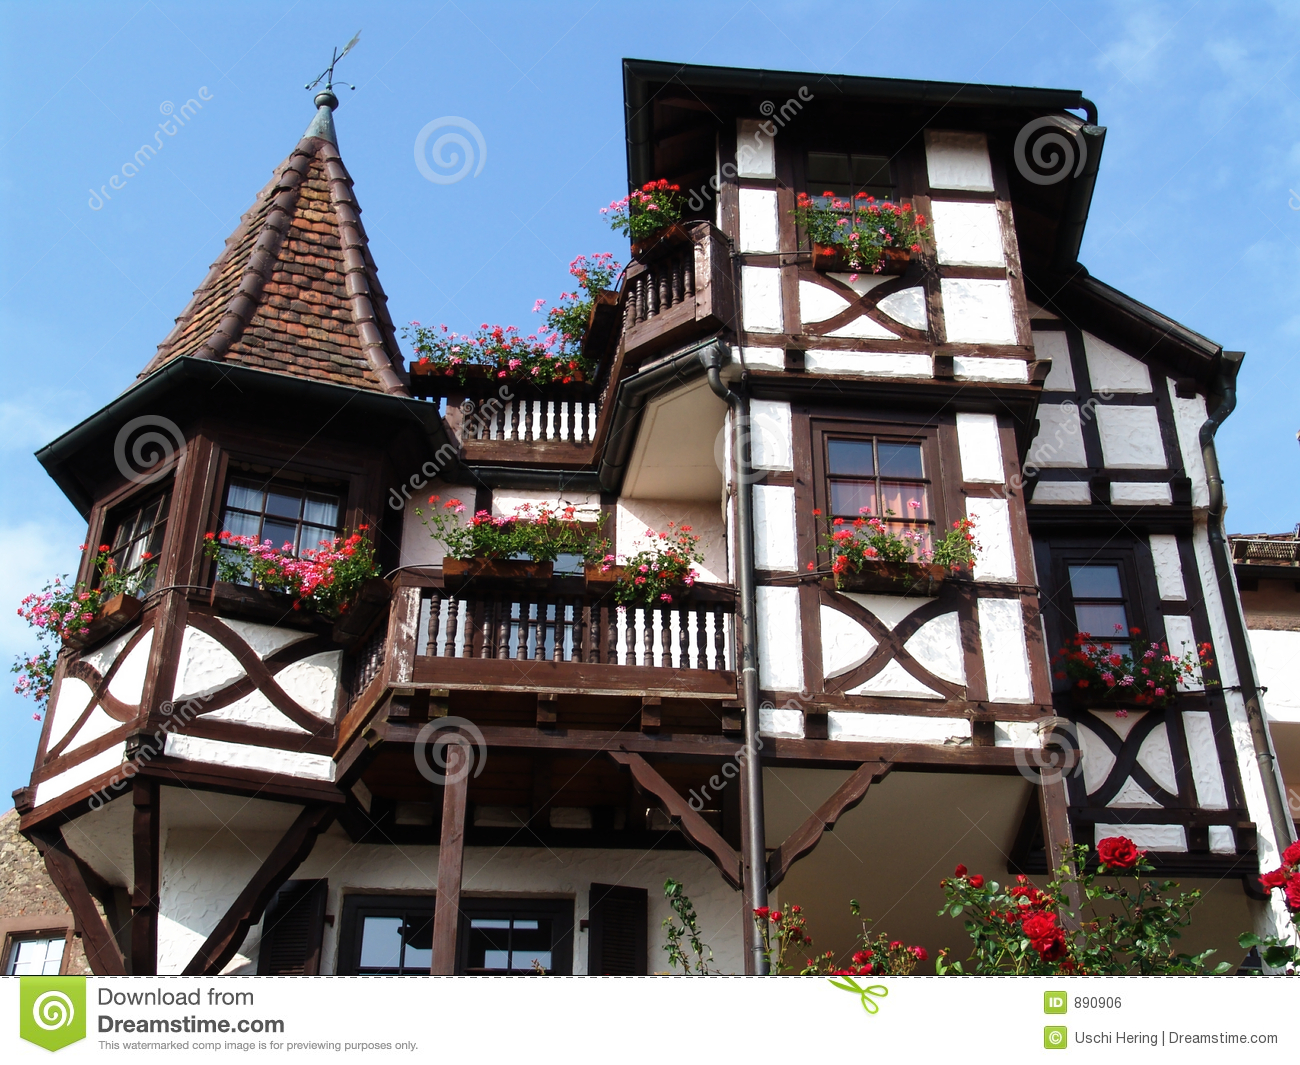 Chalet half-timbered